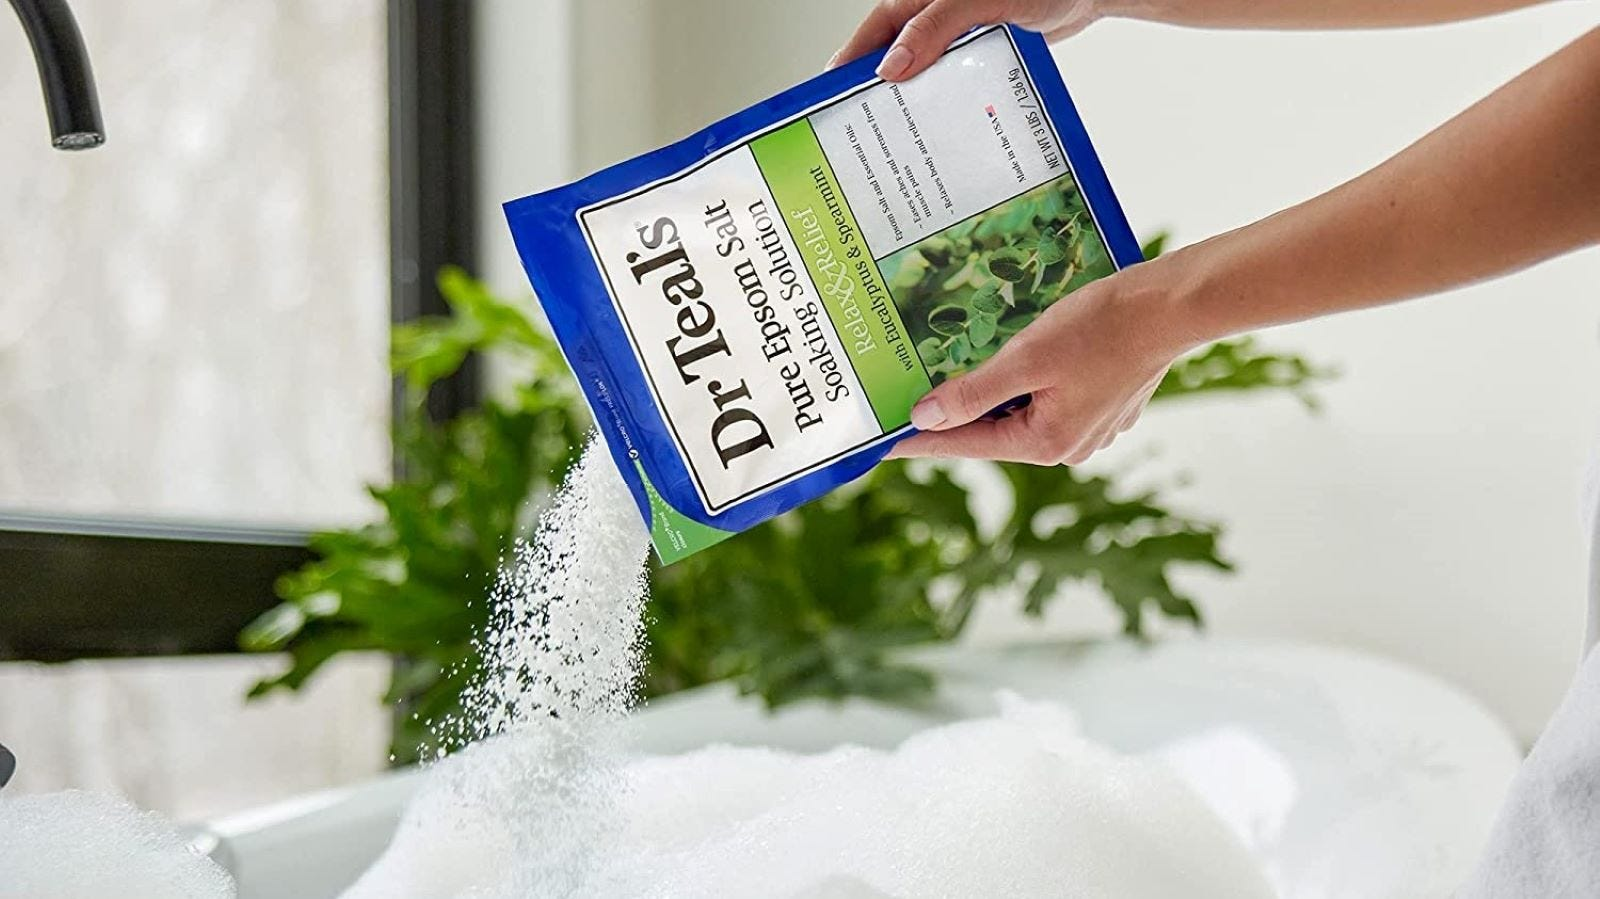 A woman pouring Dr Teals' Epsom Salts into a tub.